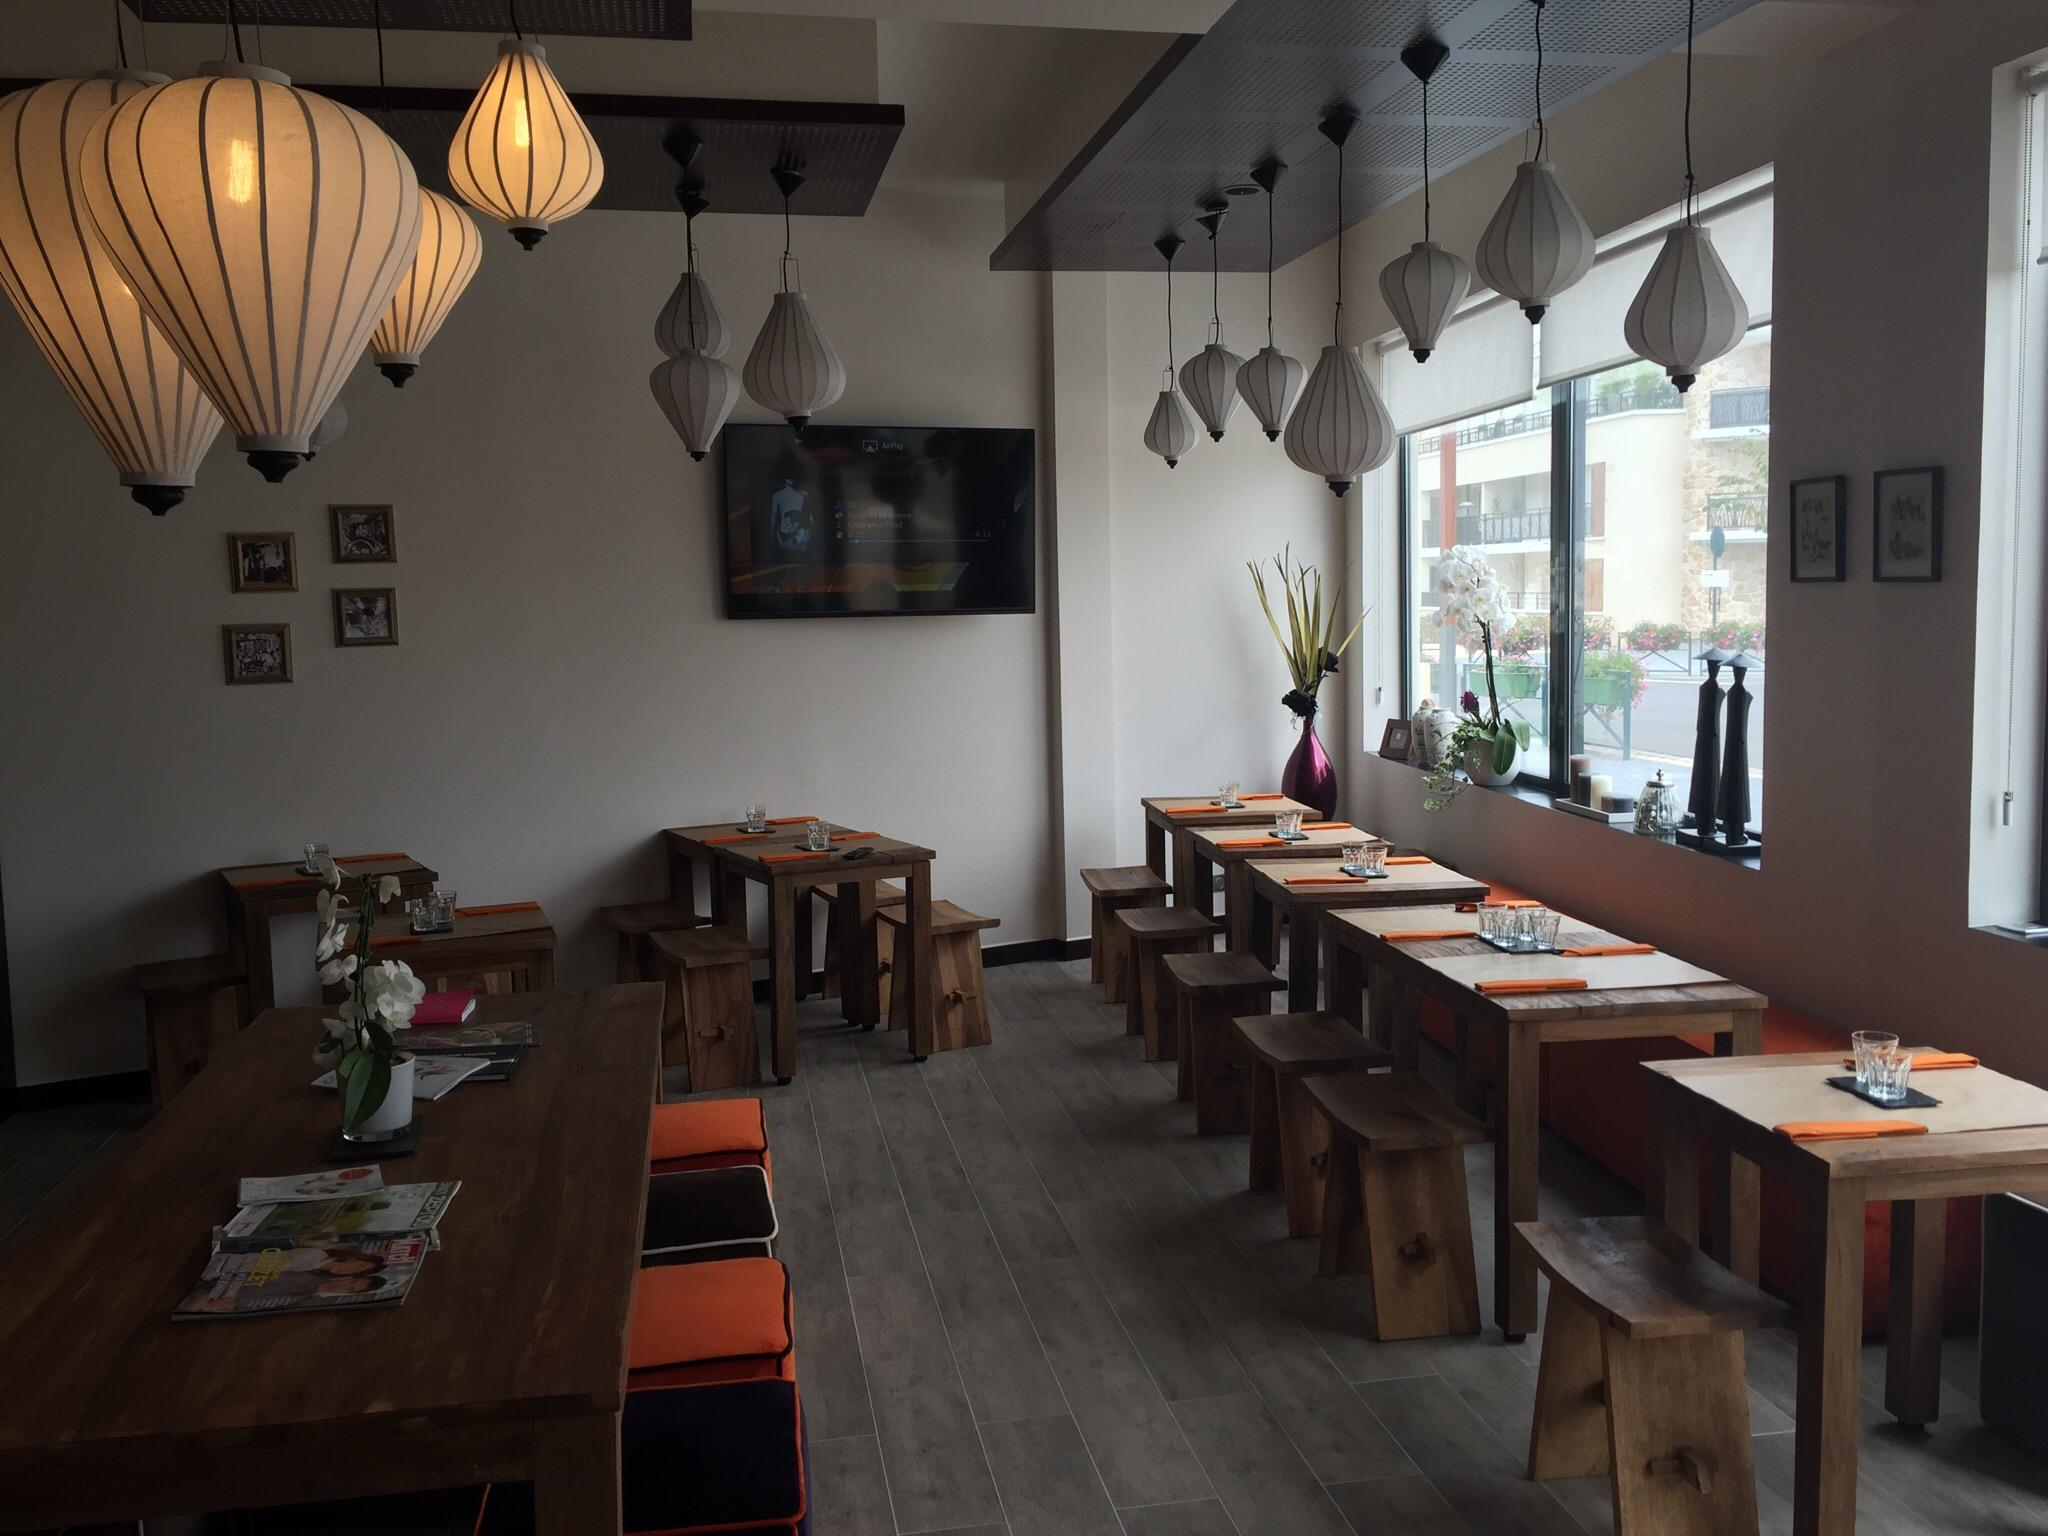 Where to eat Vietnamese food in Montevrain: The Best Restaurants and Bars